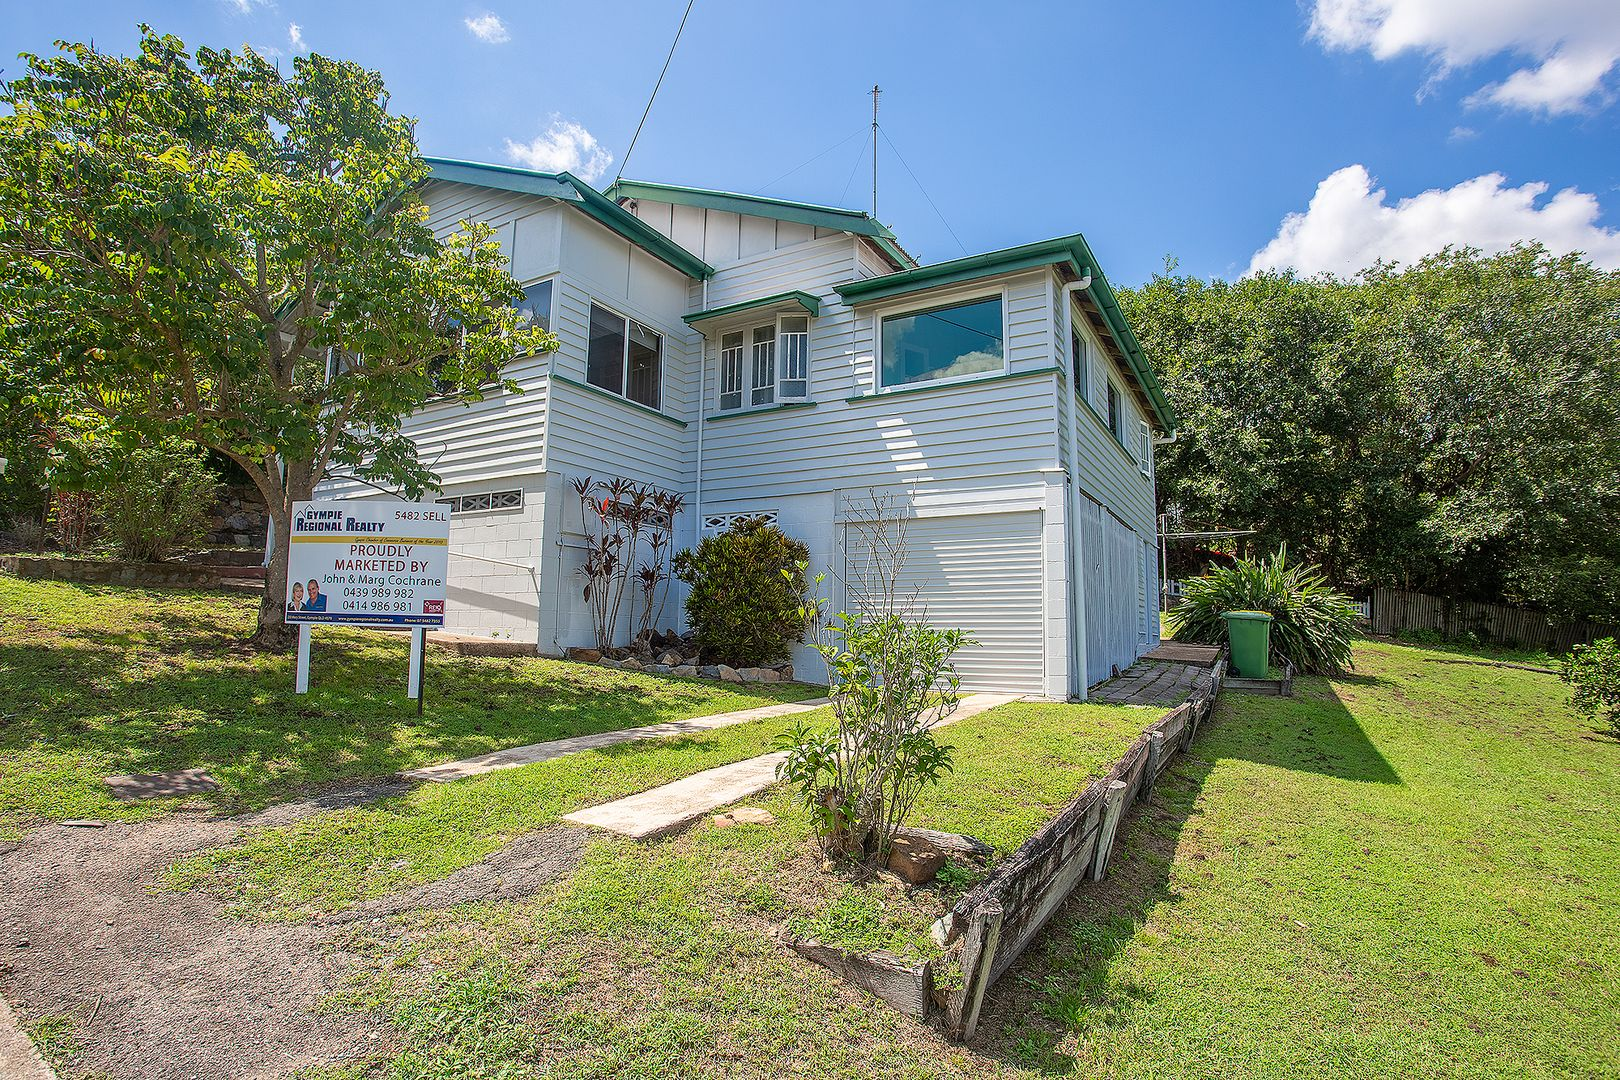 0 Cnr Spicer & Monkland Street, Gympie QLD 4570, Image 0